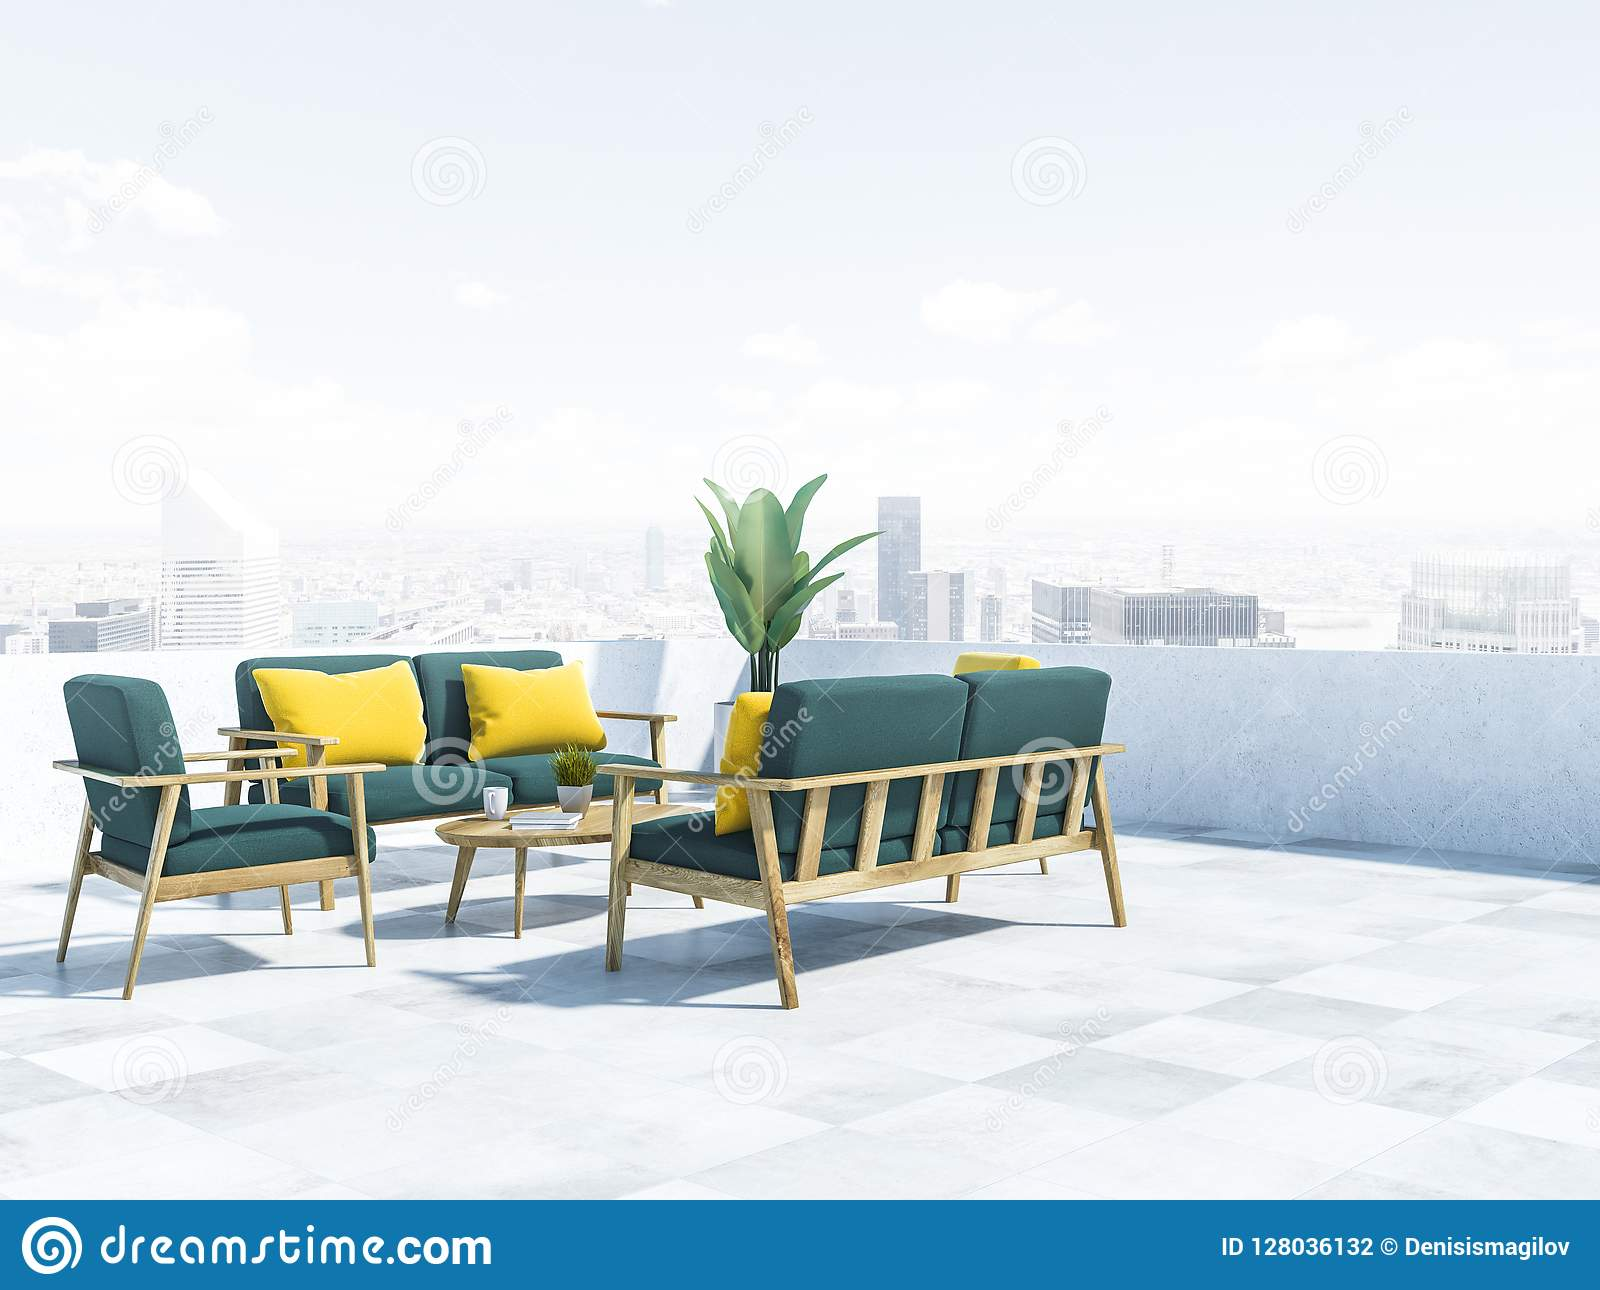 Superieur Green Sofas On Balcony, Cityscape